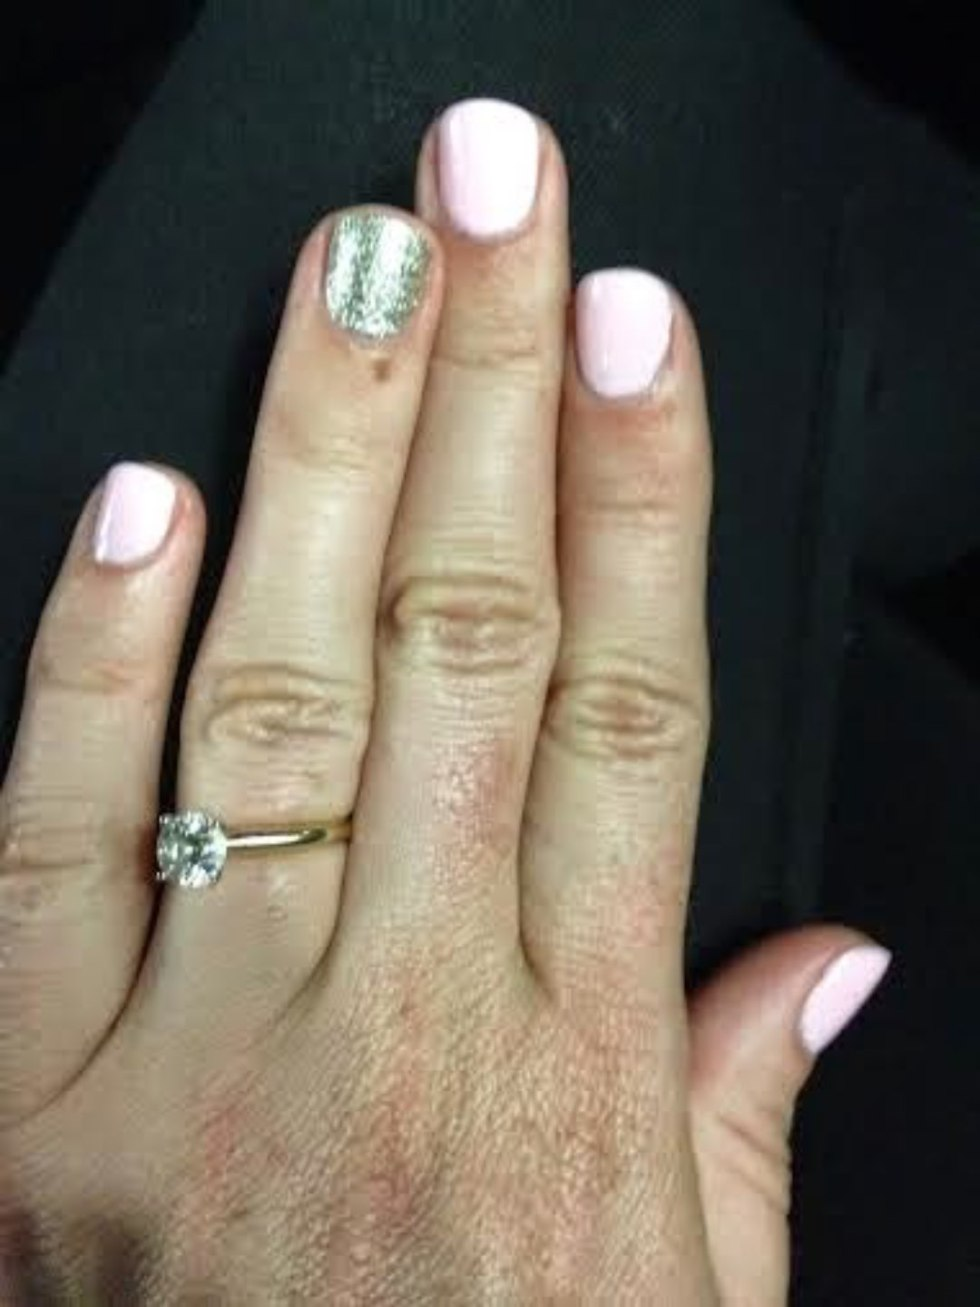 9 Best Nail Polish Colors for Warm Weather - I'm Fixin' To - @mbg0112 | Top 10 Best Summer Nail Polish Colors by popular North Carolina blog, I'm Fixin' To: image of a manicured hand with Essie Fiji on the nails.